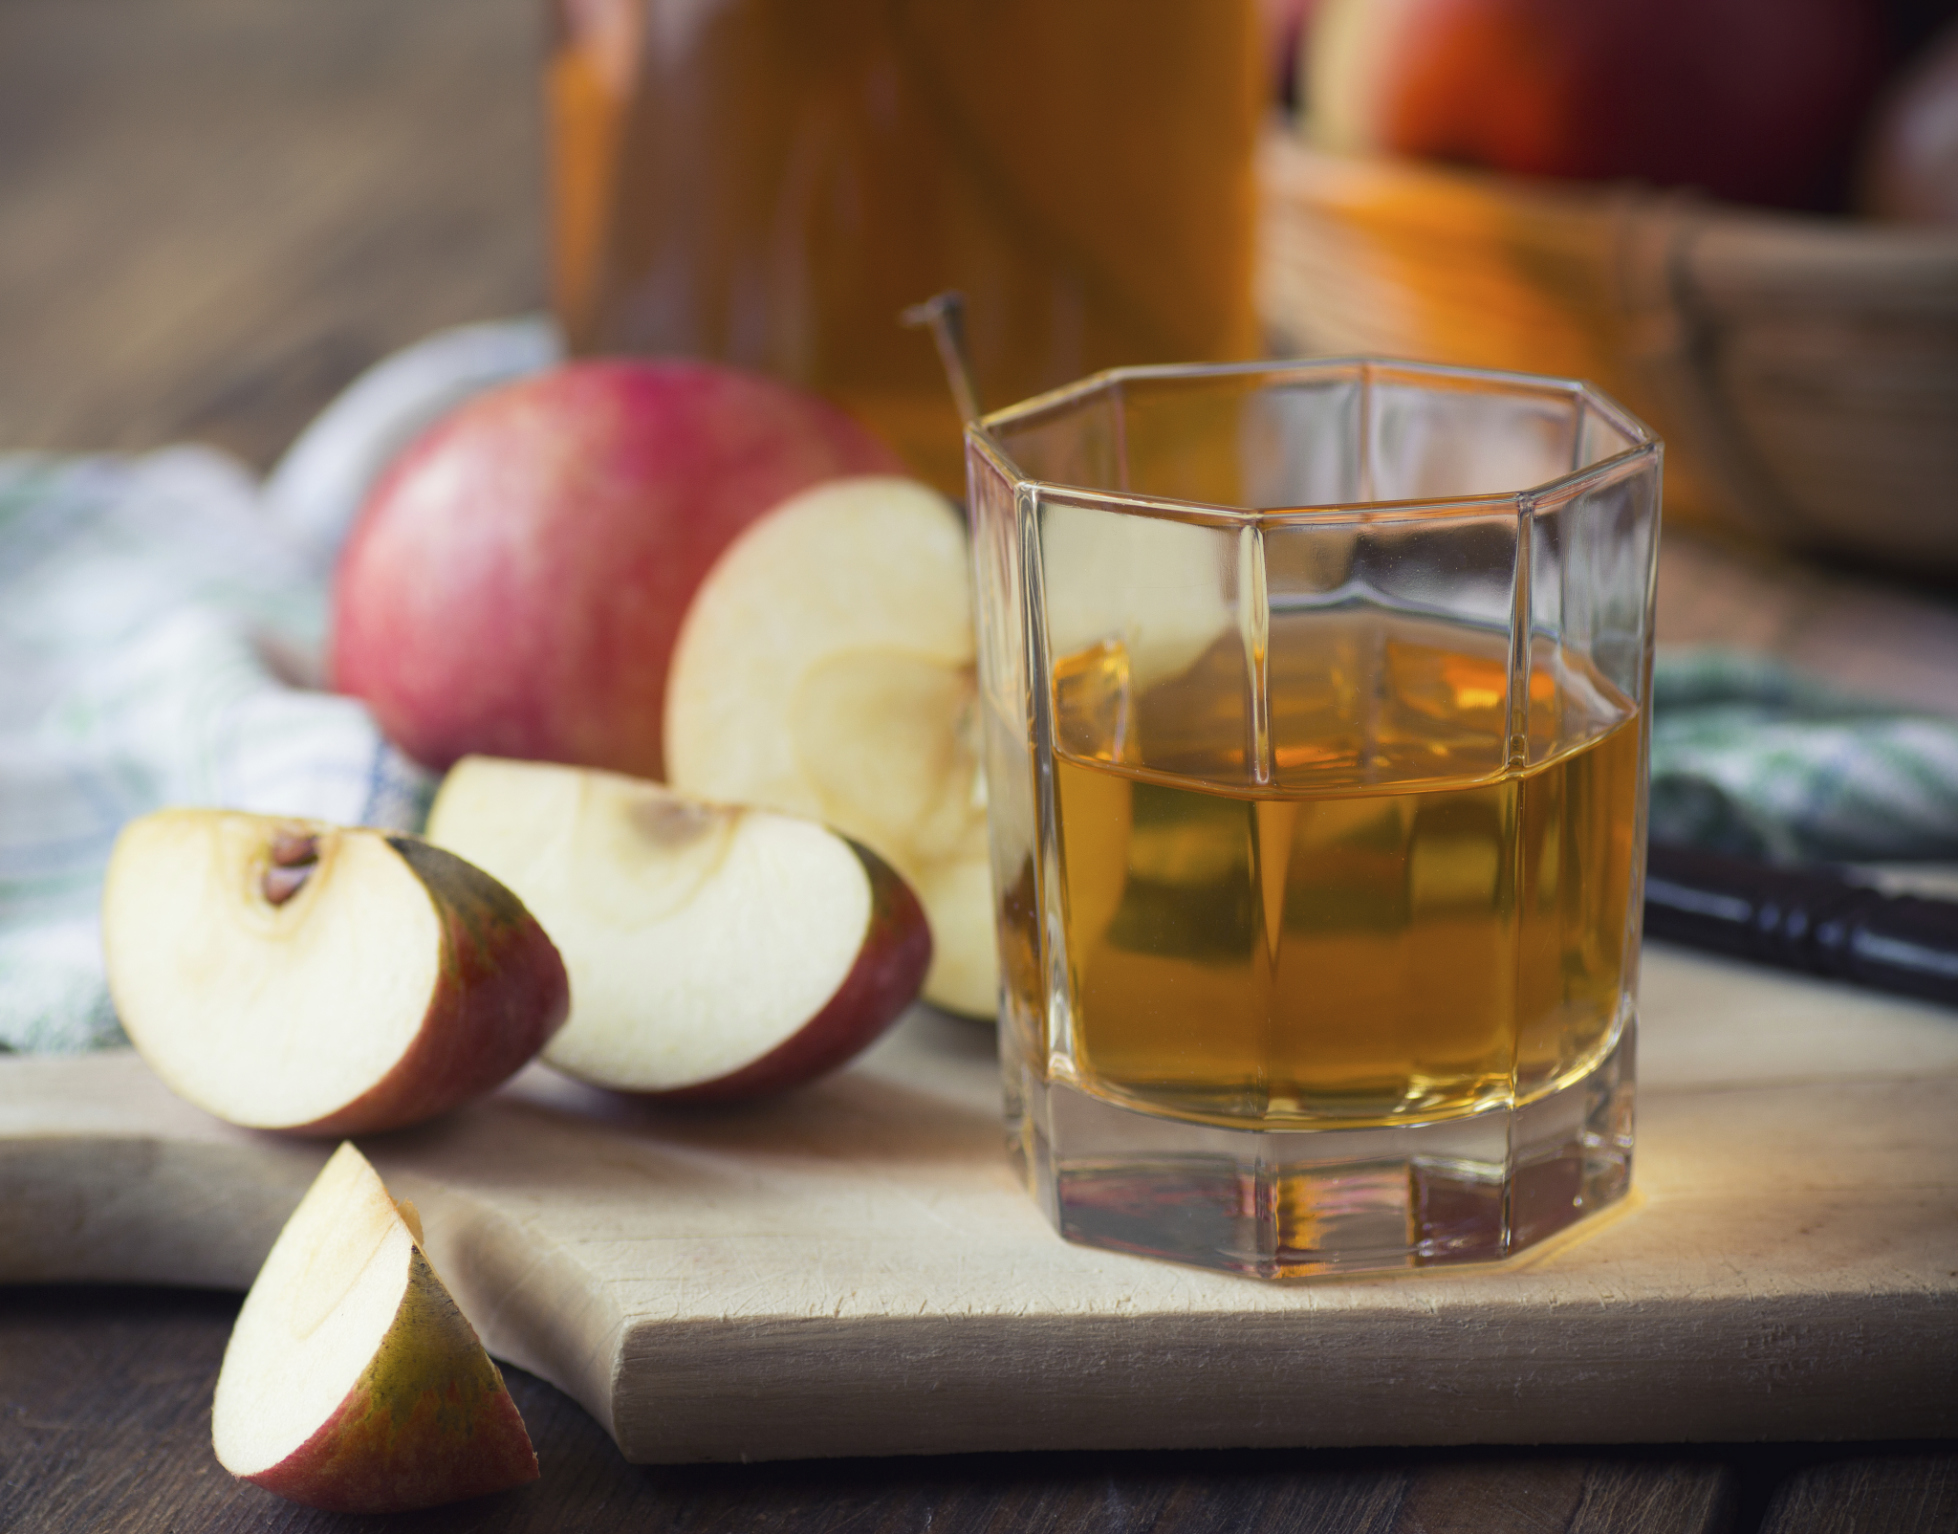 Apple juice: the benefits and harms of a drink